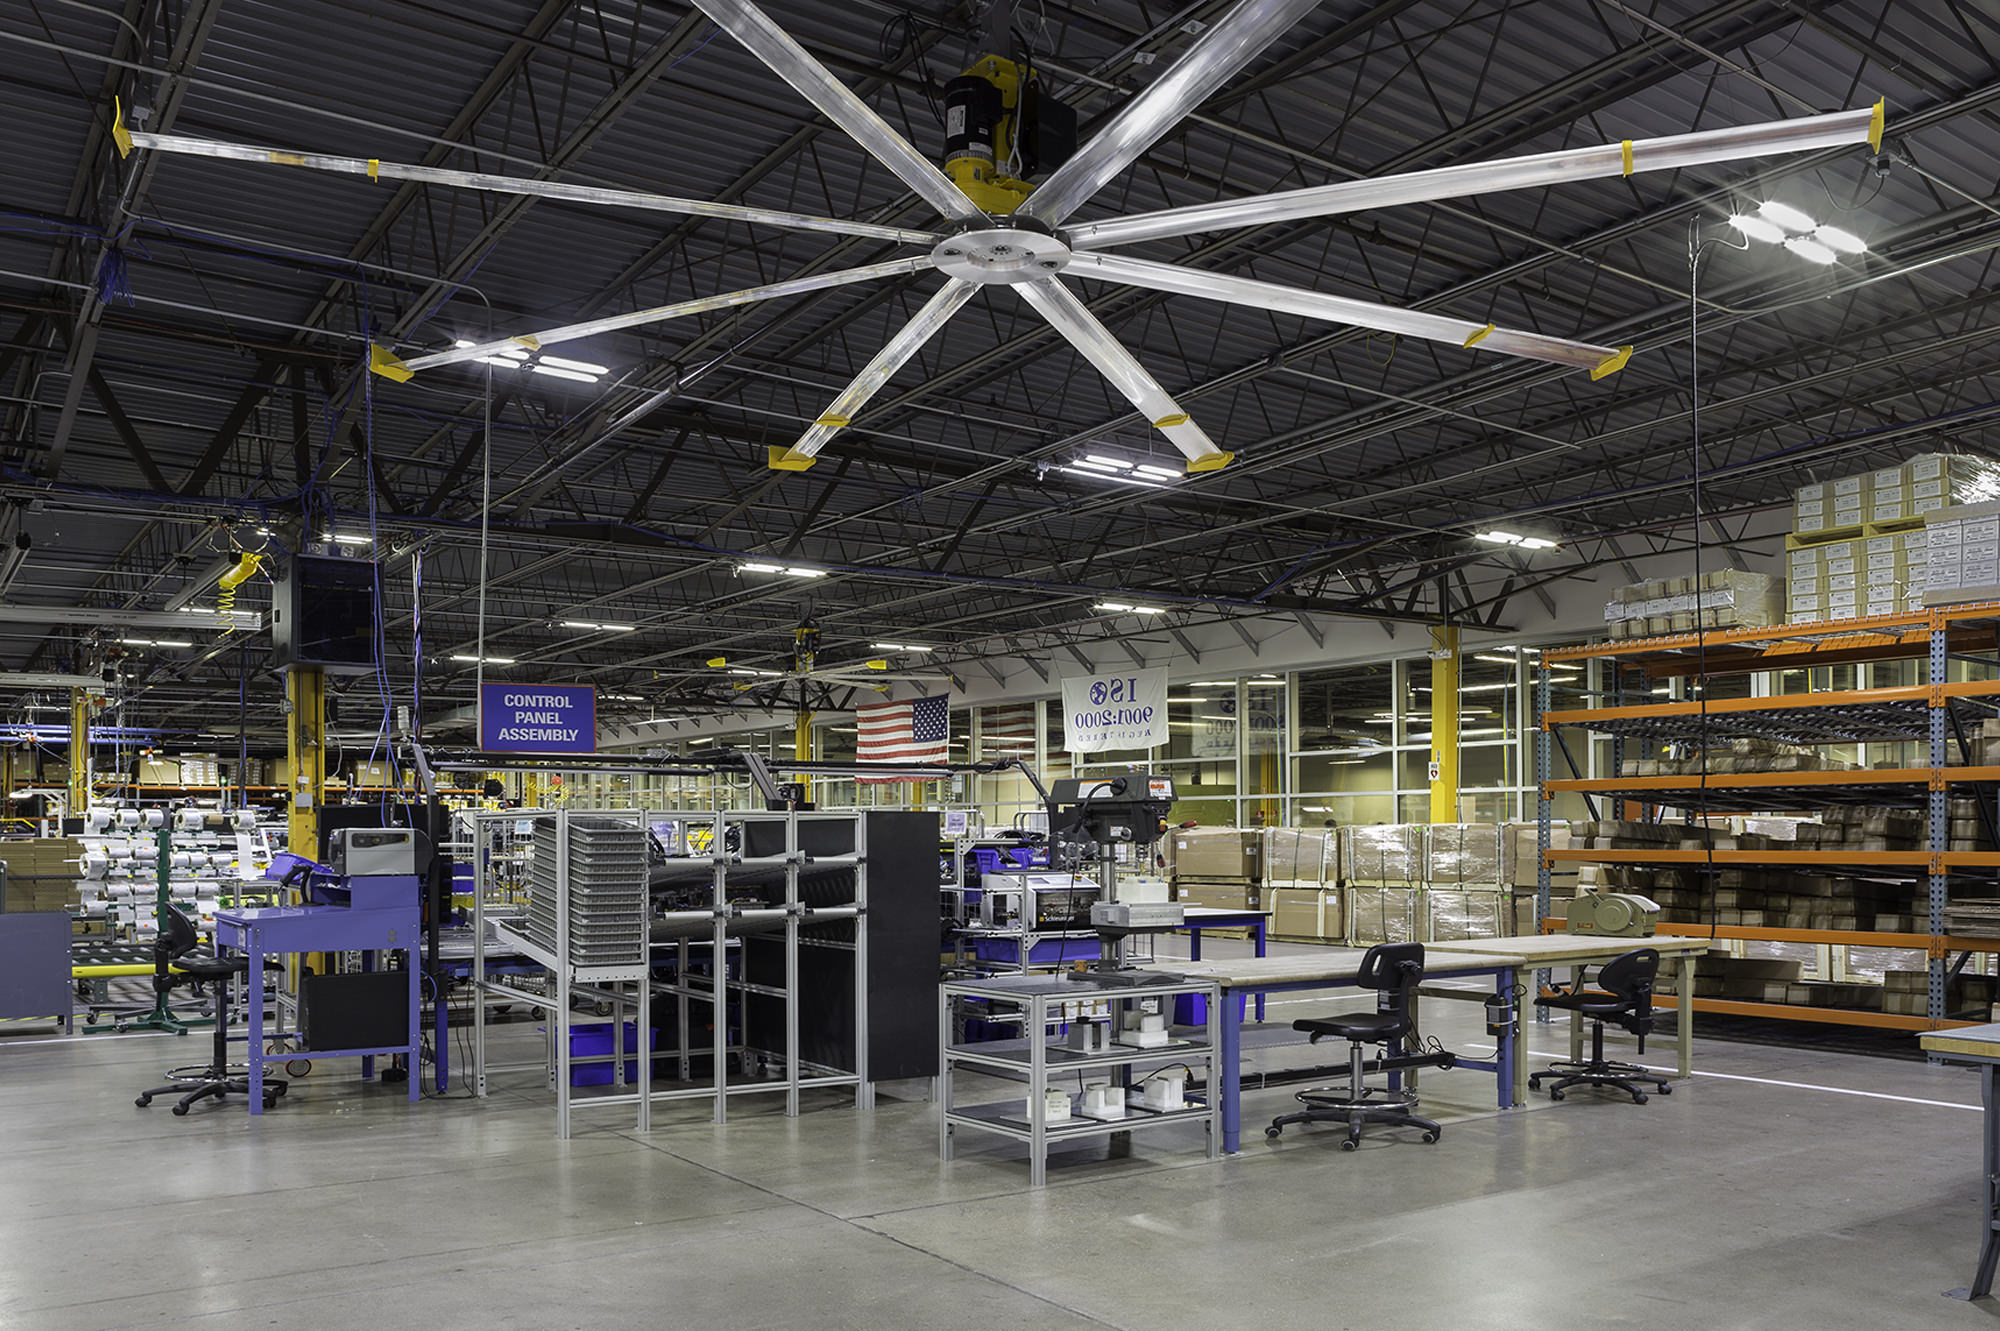 Big As Fan >> Powerfoil X3 0 Is An Hvls Ceiling Fan With Led Lighting